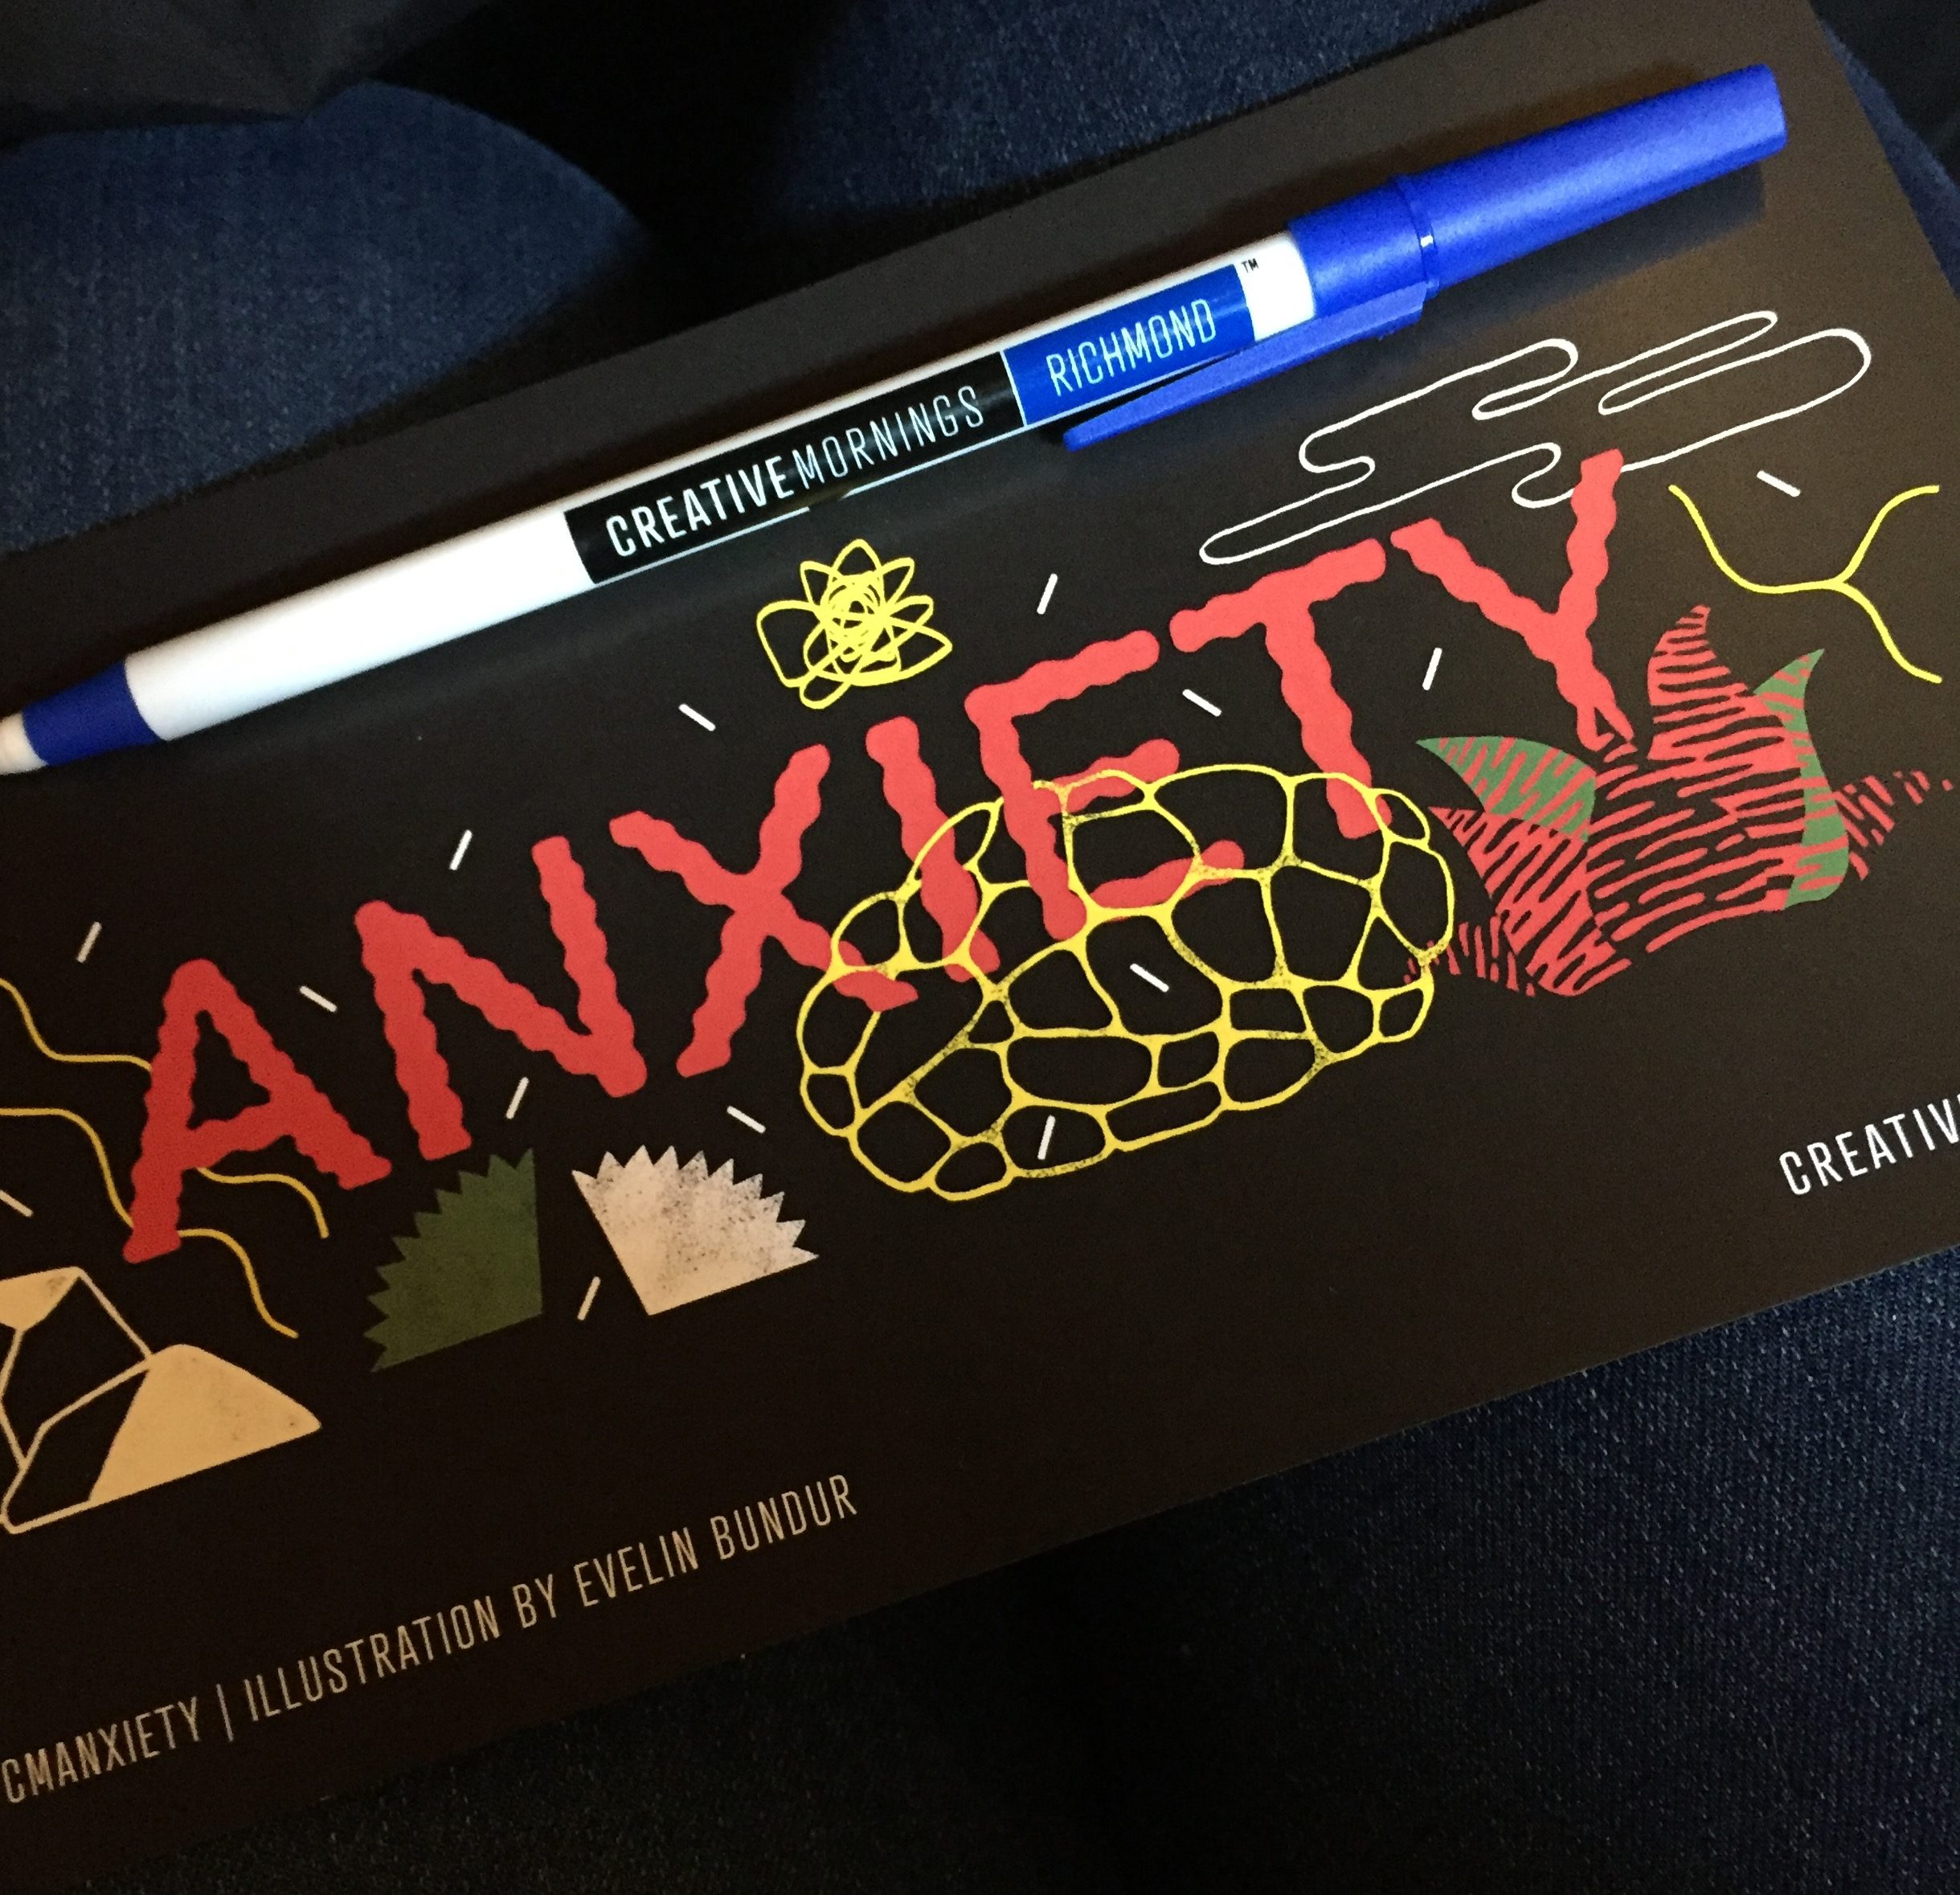 Finding Anxiety in Creativity